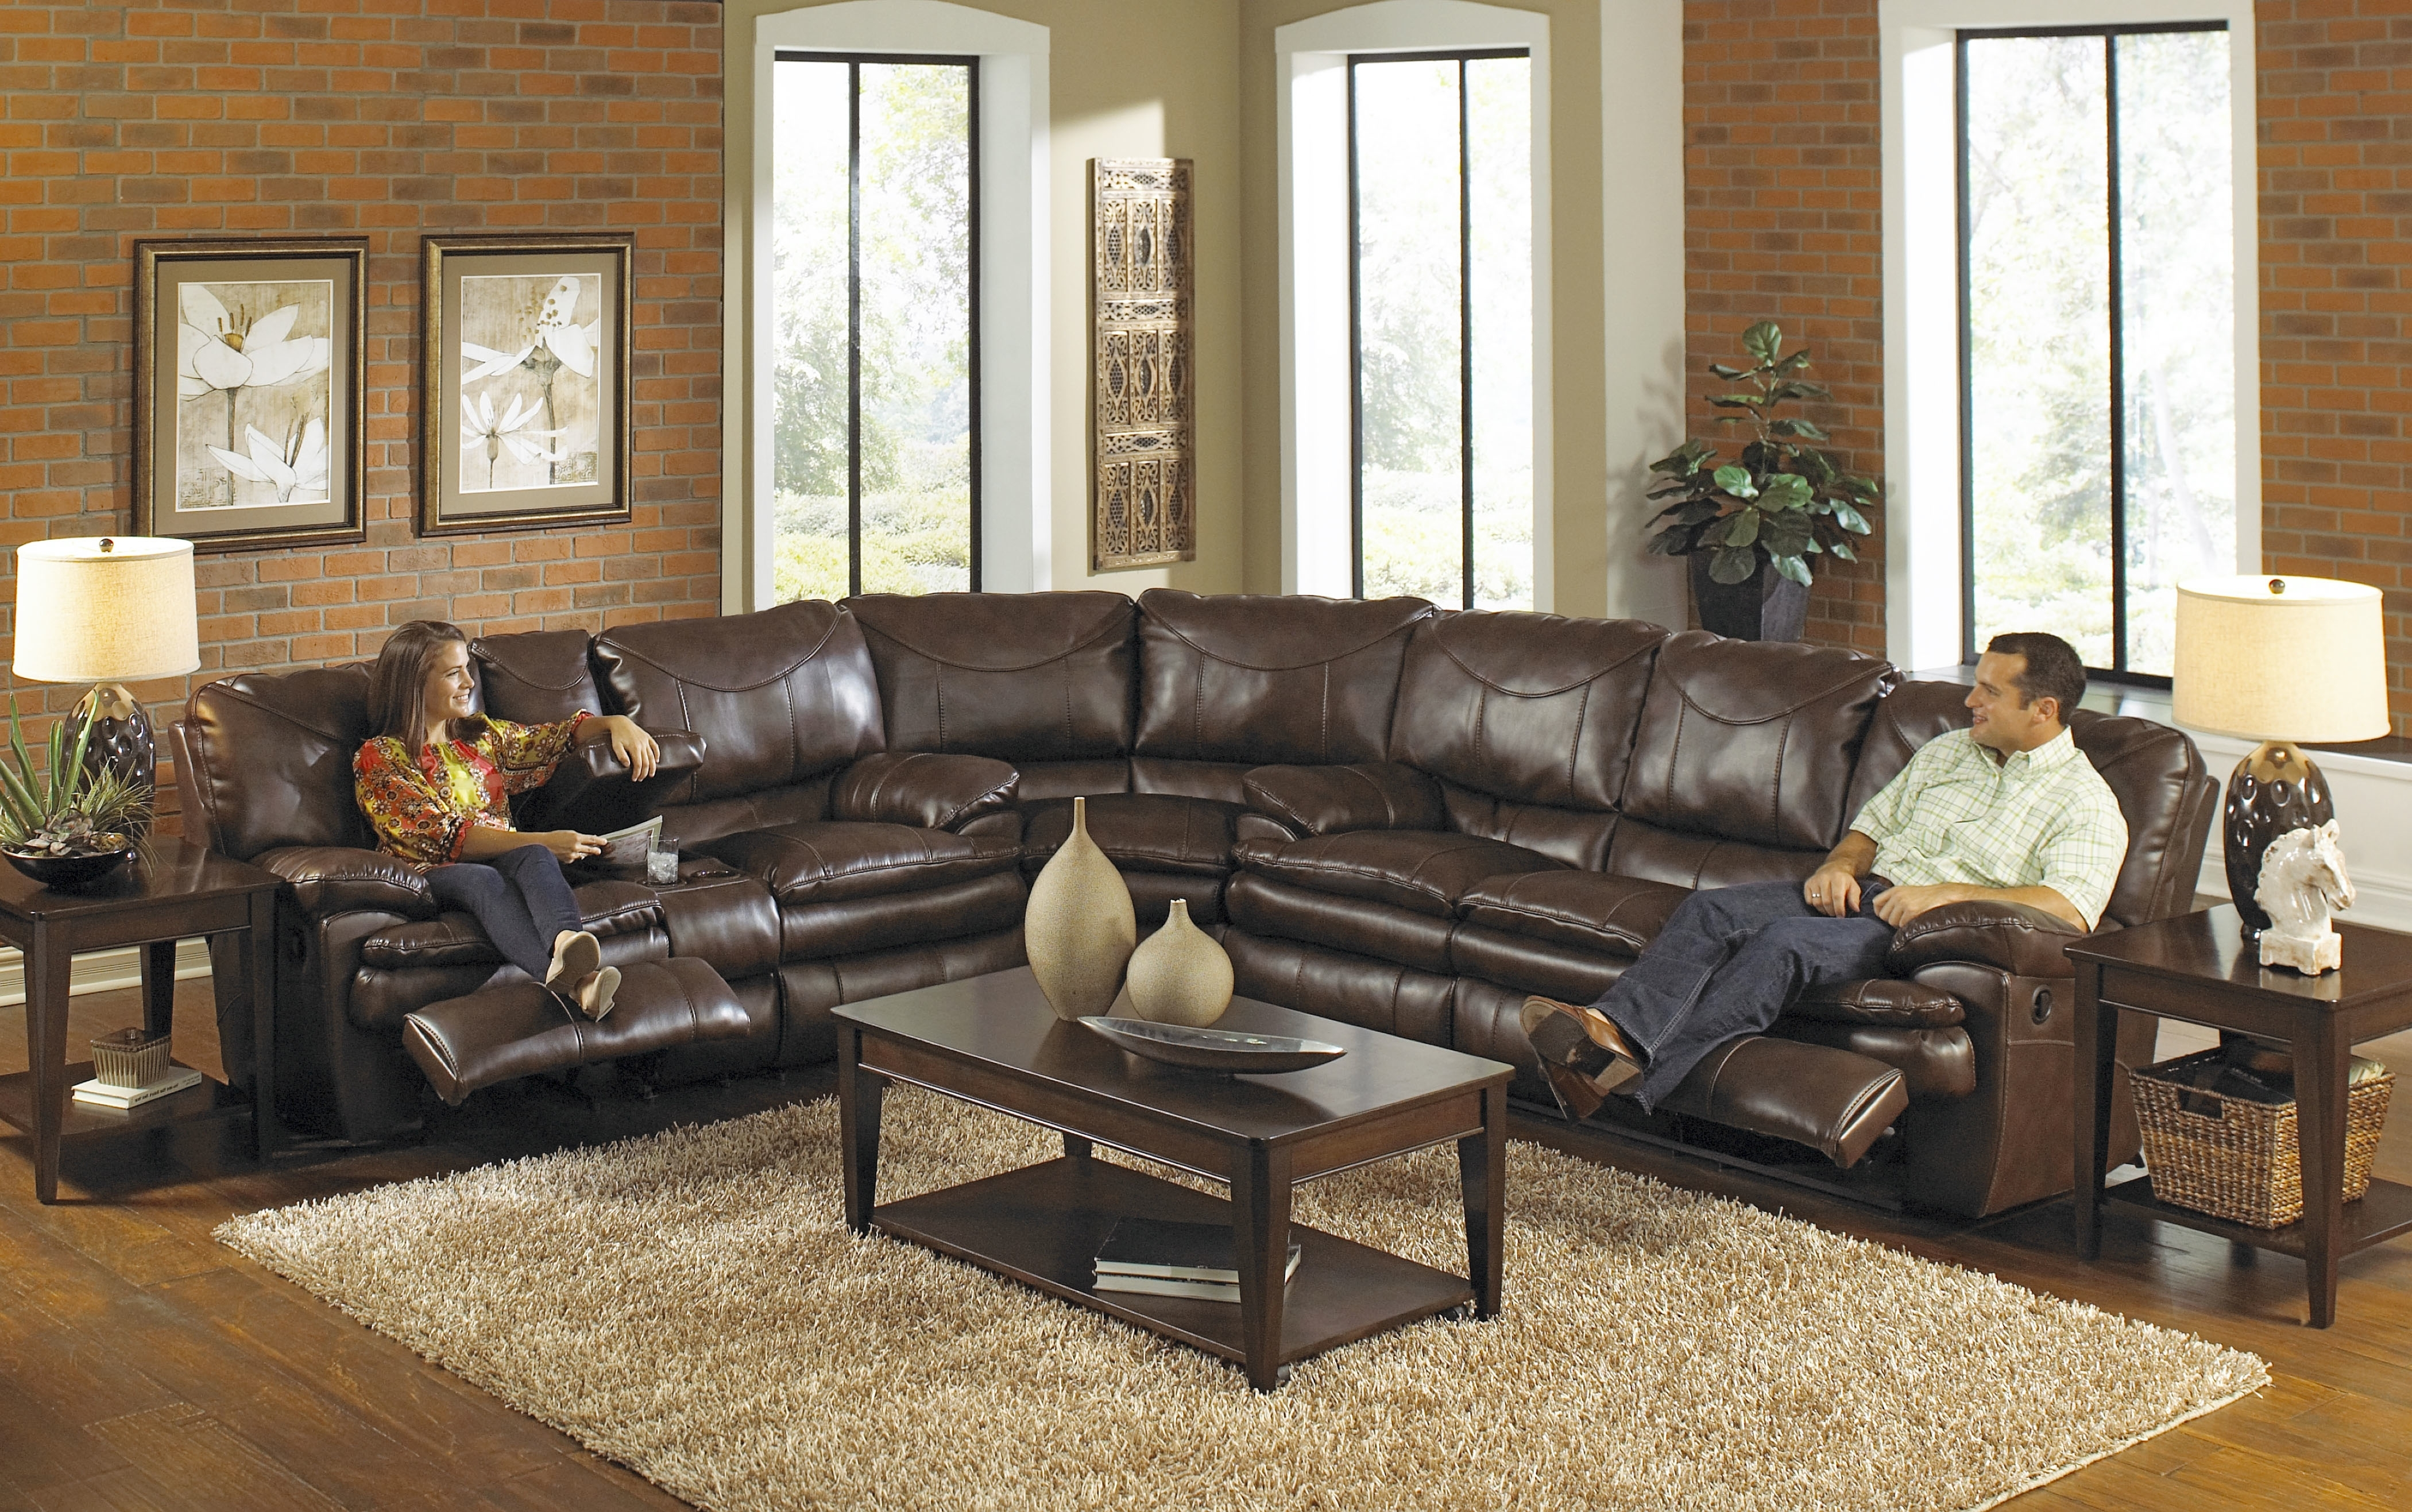 Famous Buy Large Sectional Sofas Perfect For Your Large Living Room Within Leather Recliner Sectional Sofas (View 5 of 20)